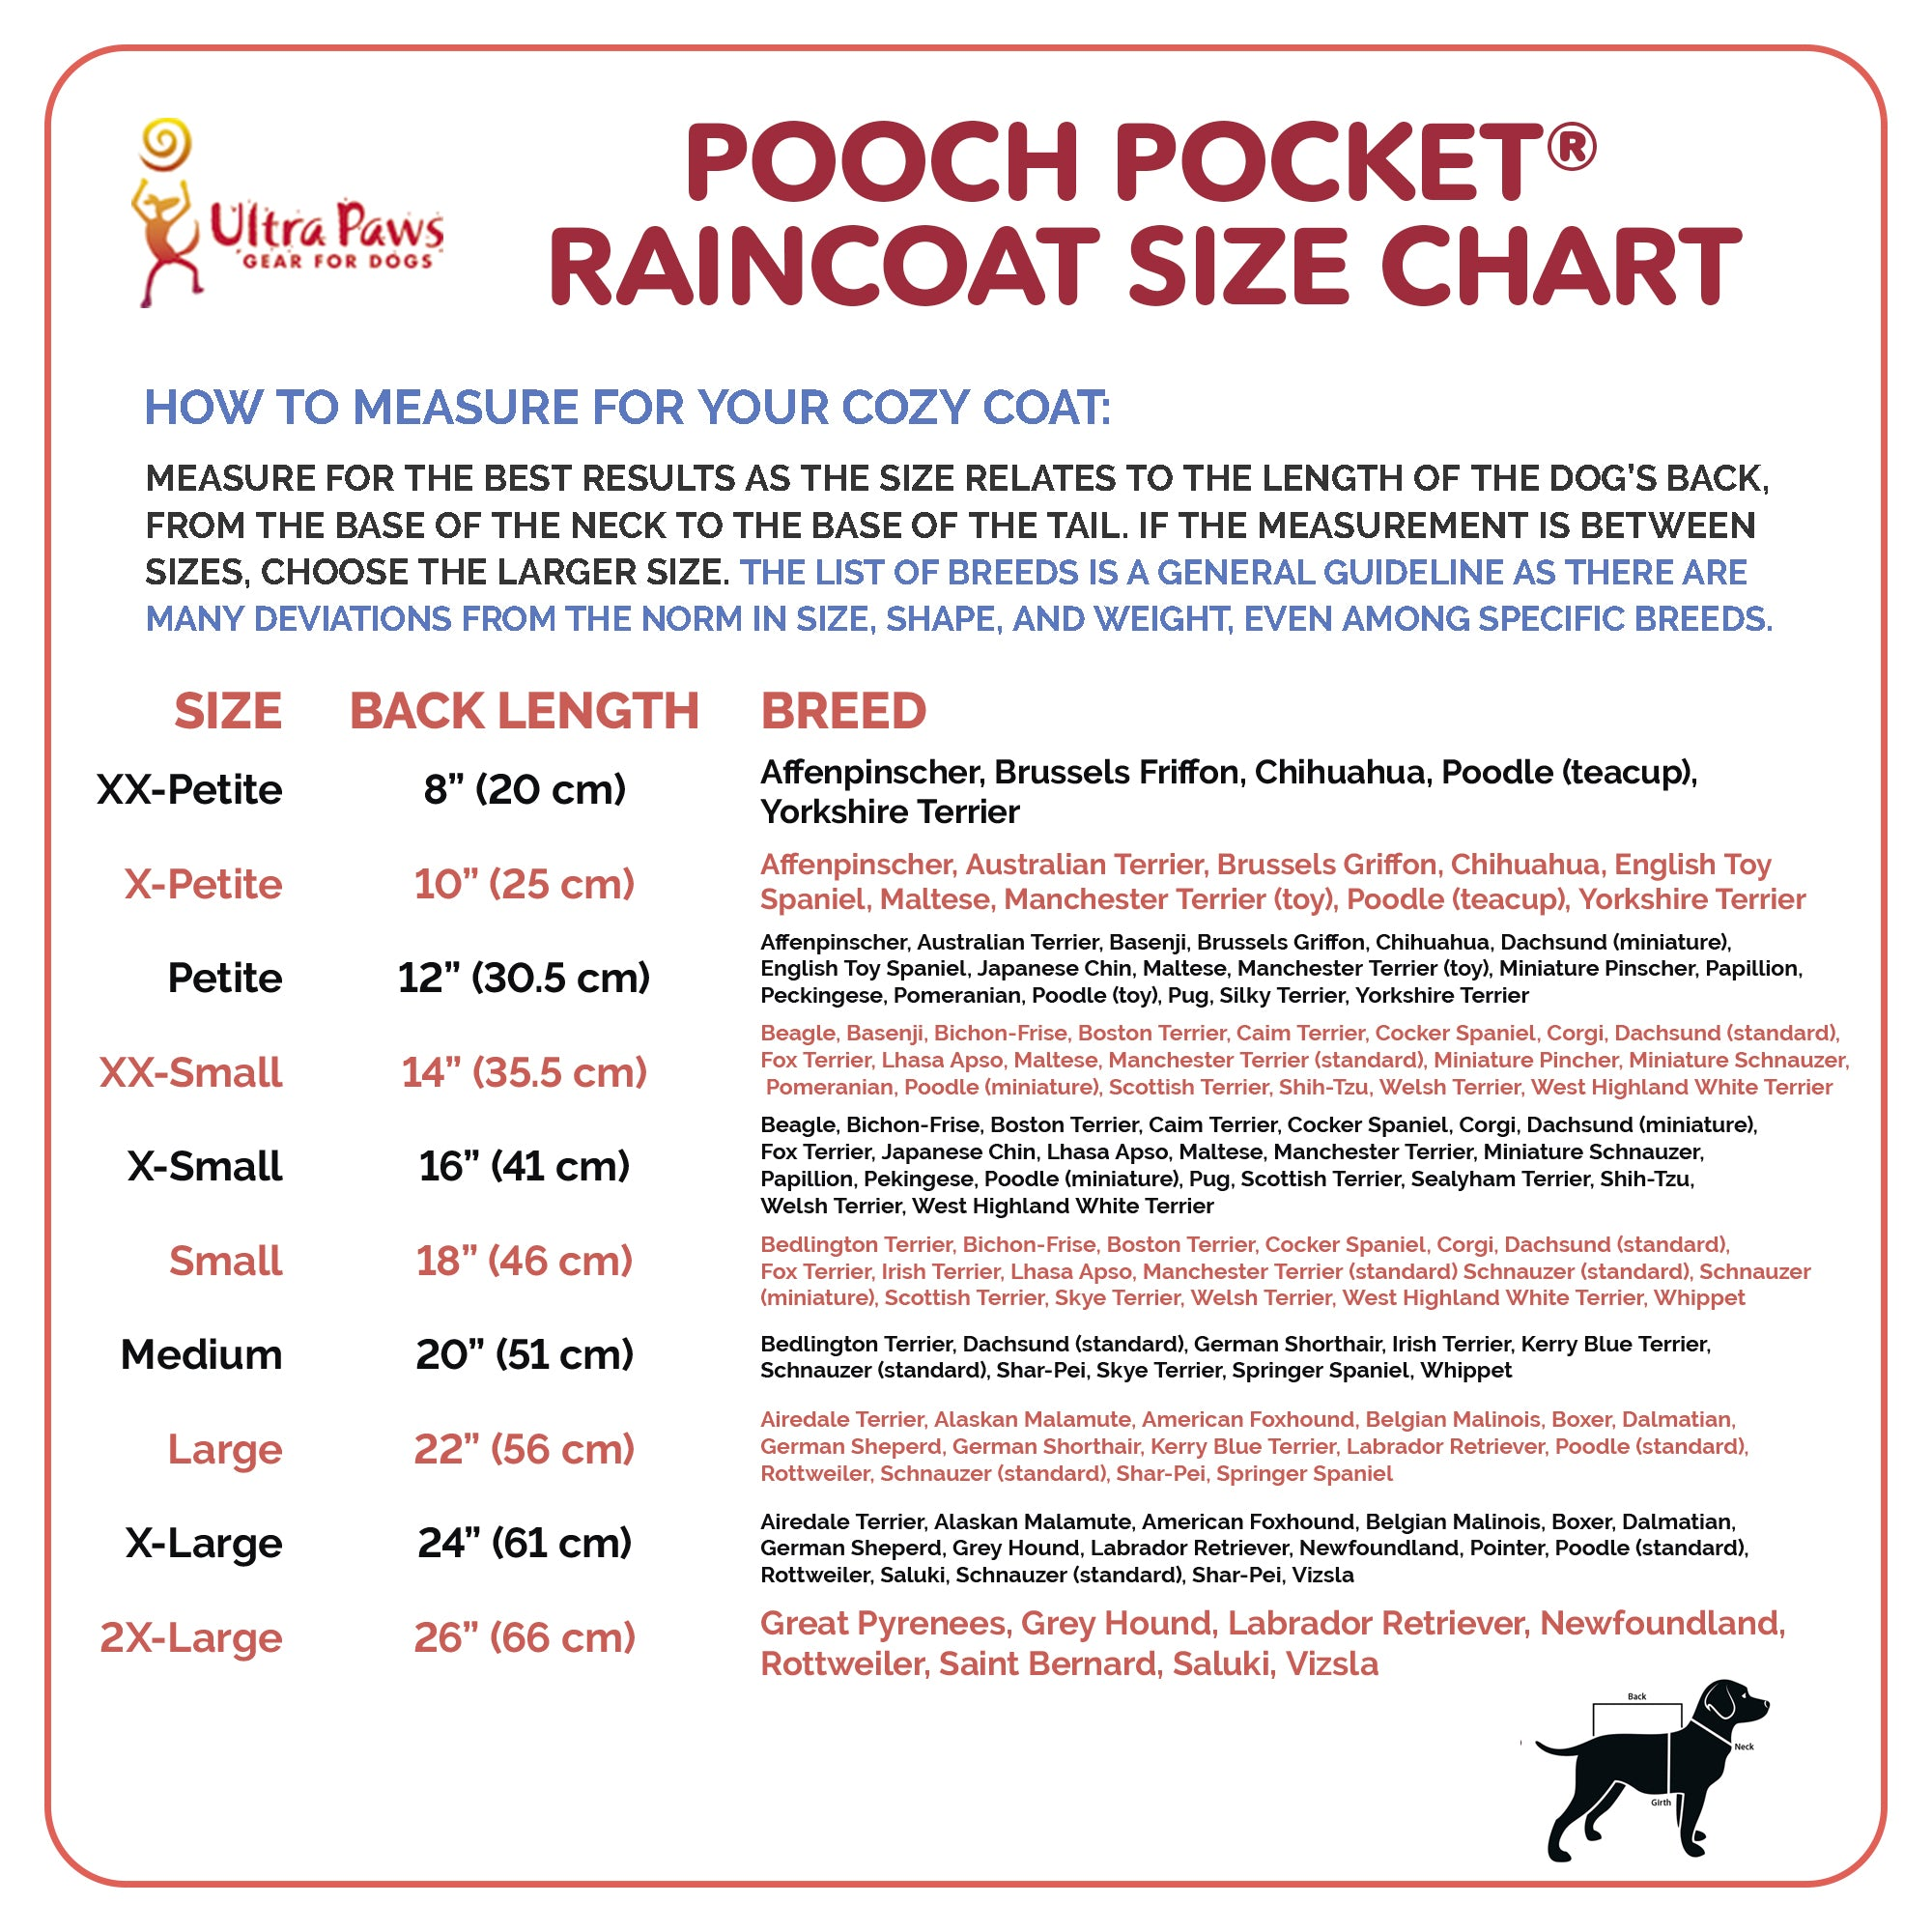 Ultra Paws Pooch Pocket® Raincoat Sizing Chart